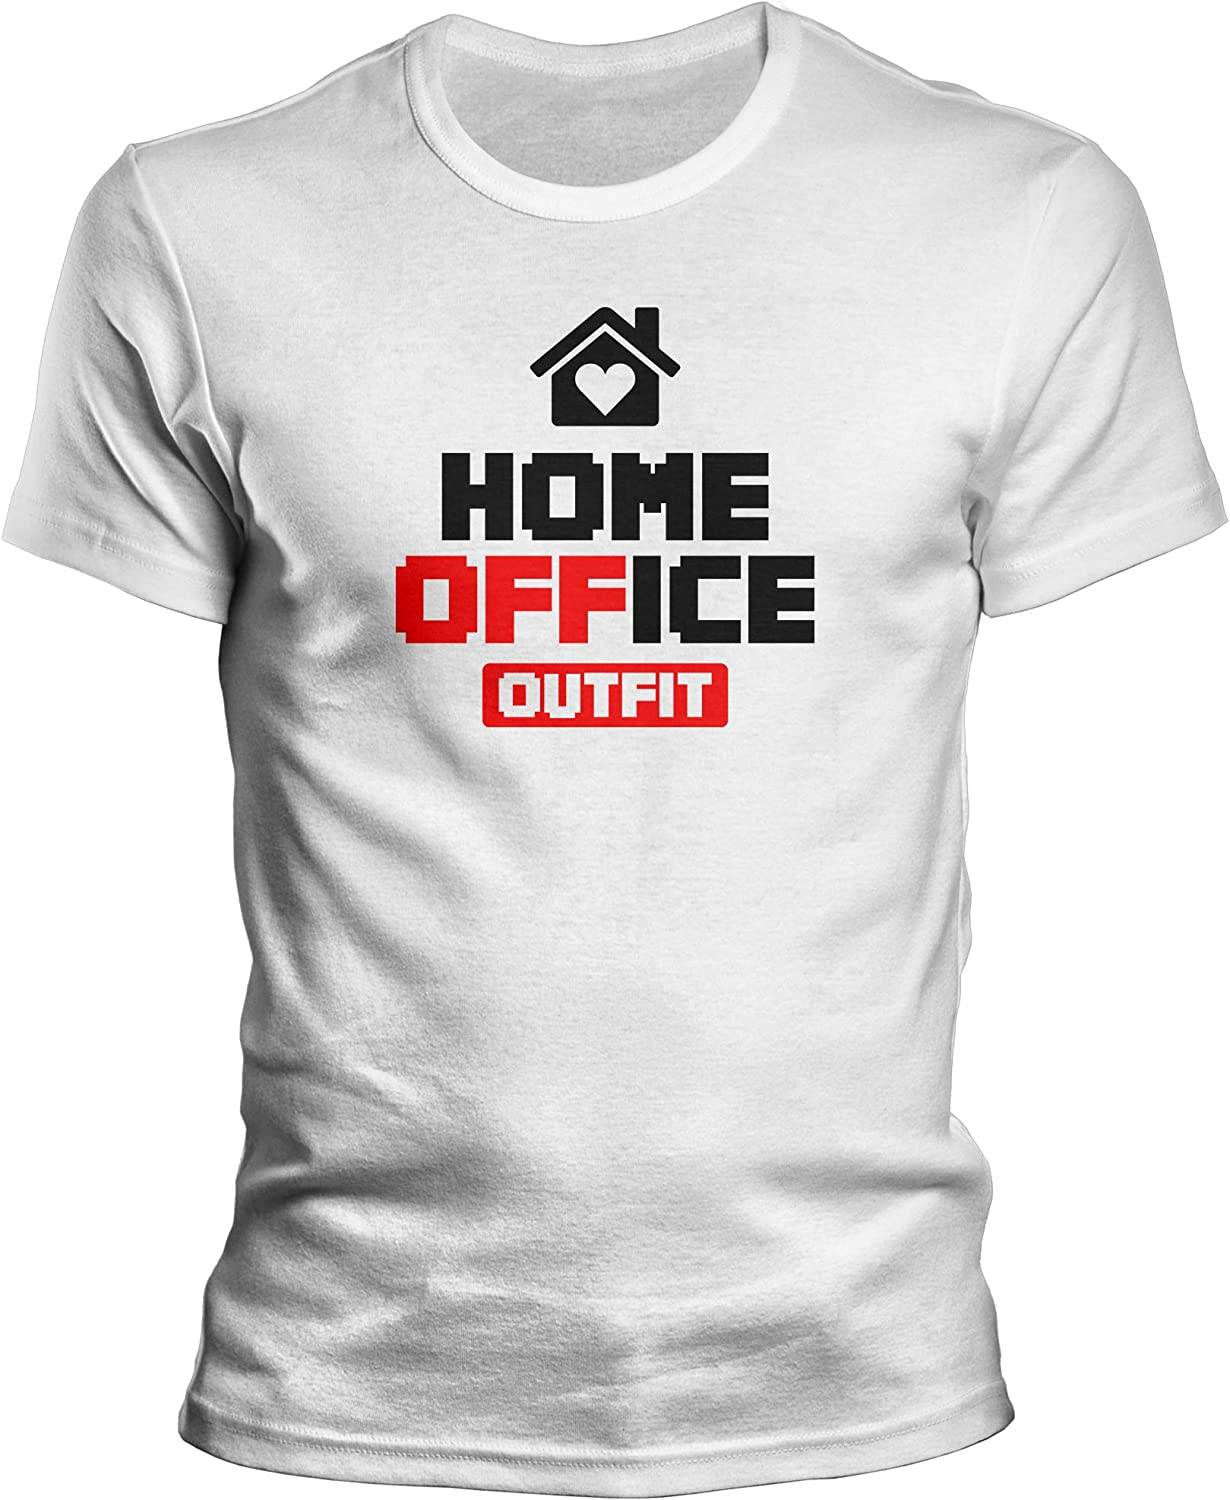 DragonHive – Camiseta para hombre – Home Office Outfit Corona ...